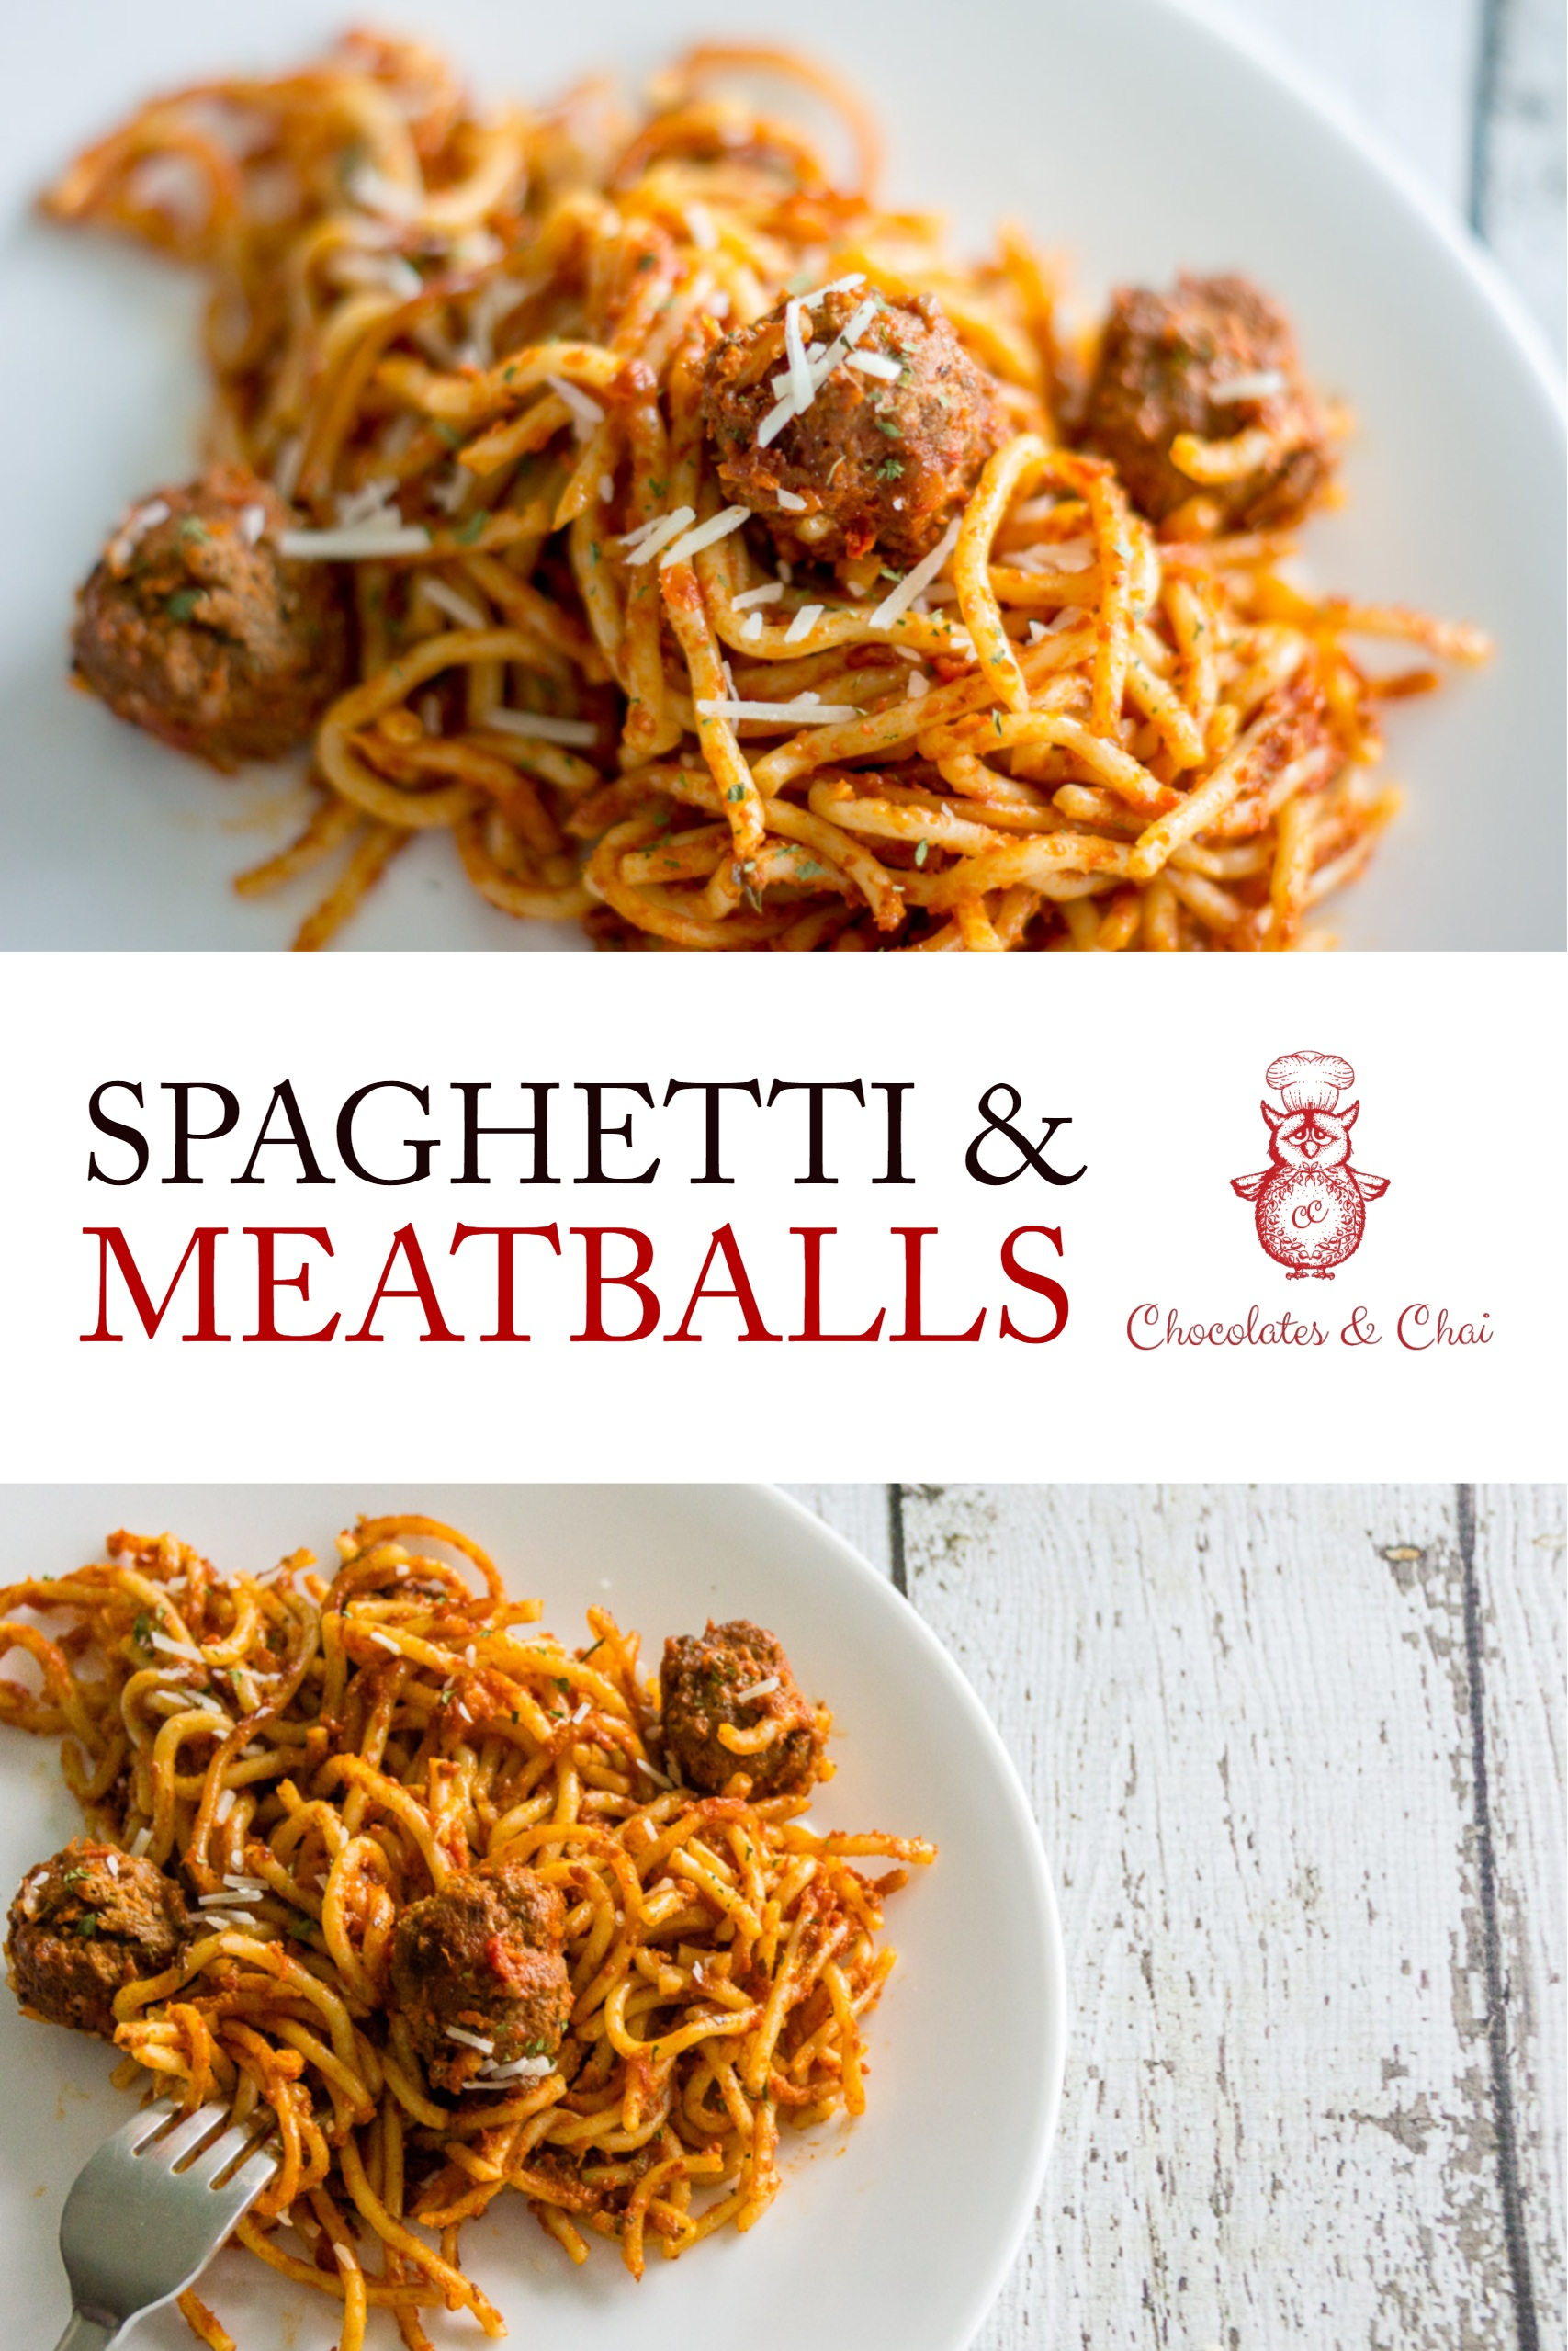 Spaghetti & Meatballs pinterest image showing two horizontal photos.